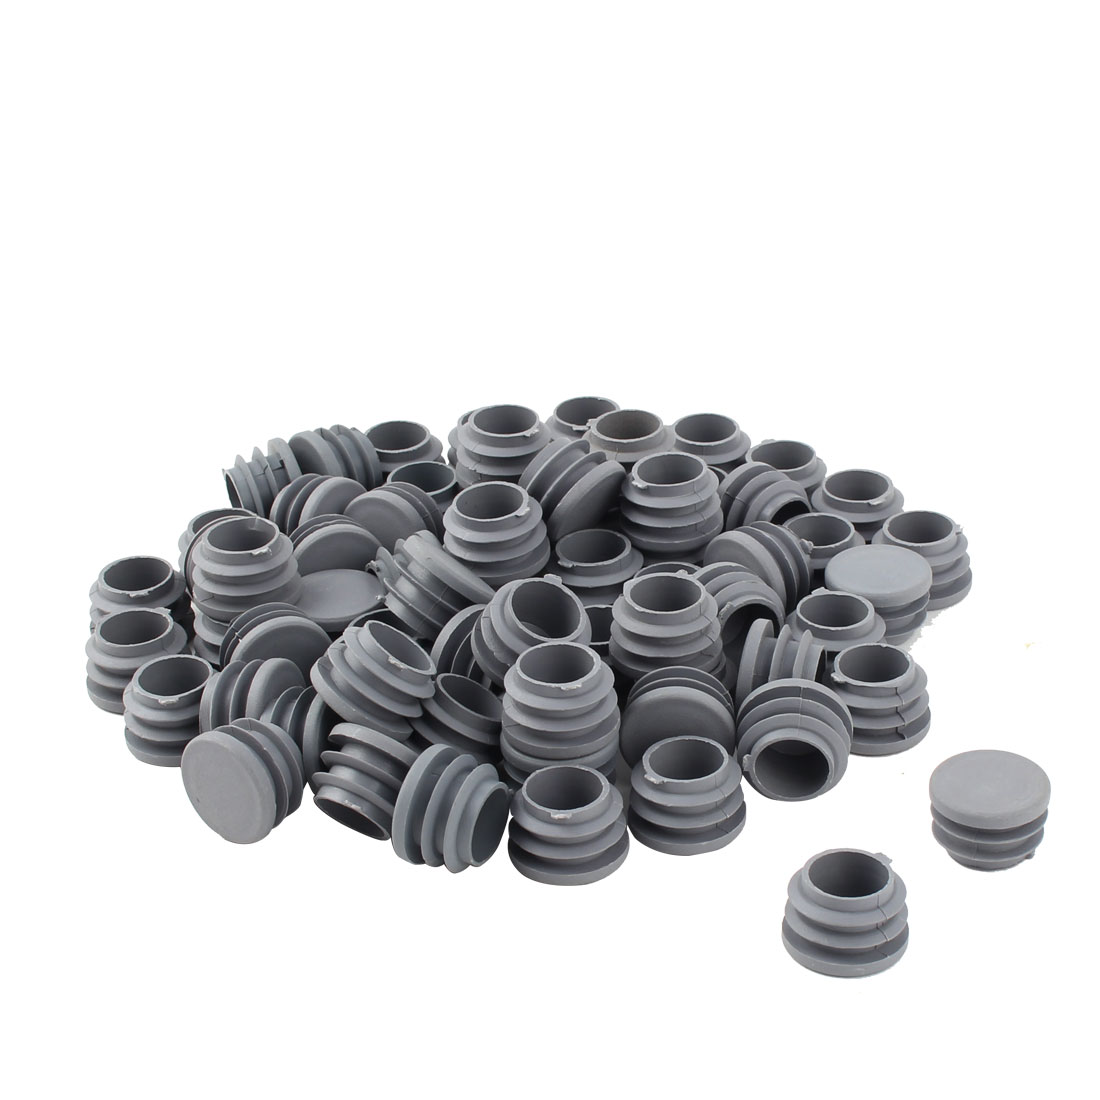 Furniture Table Chair Plastic Round Tube Pipe Insert Cap Cover Protector Gray 25mm Dia 70pcs